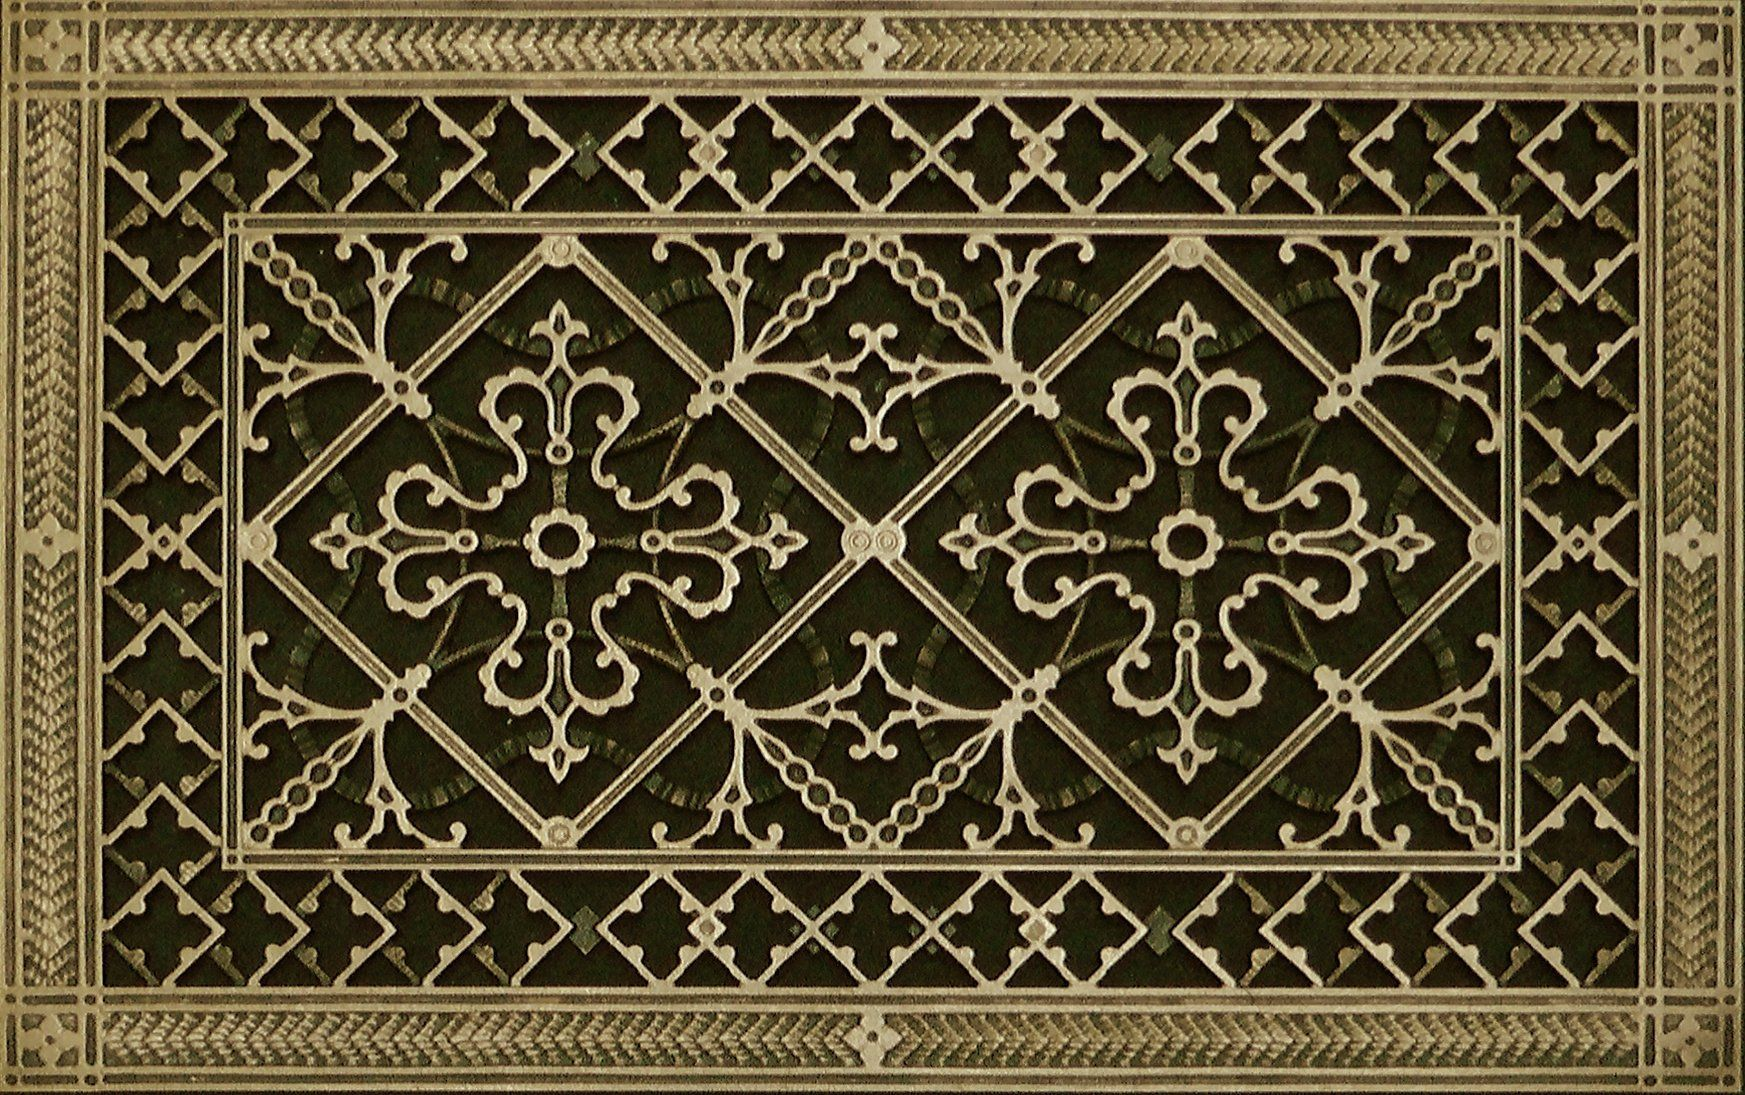 Decorative Heating and Air Conditioning Grille, Vent, or